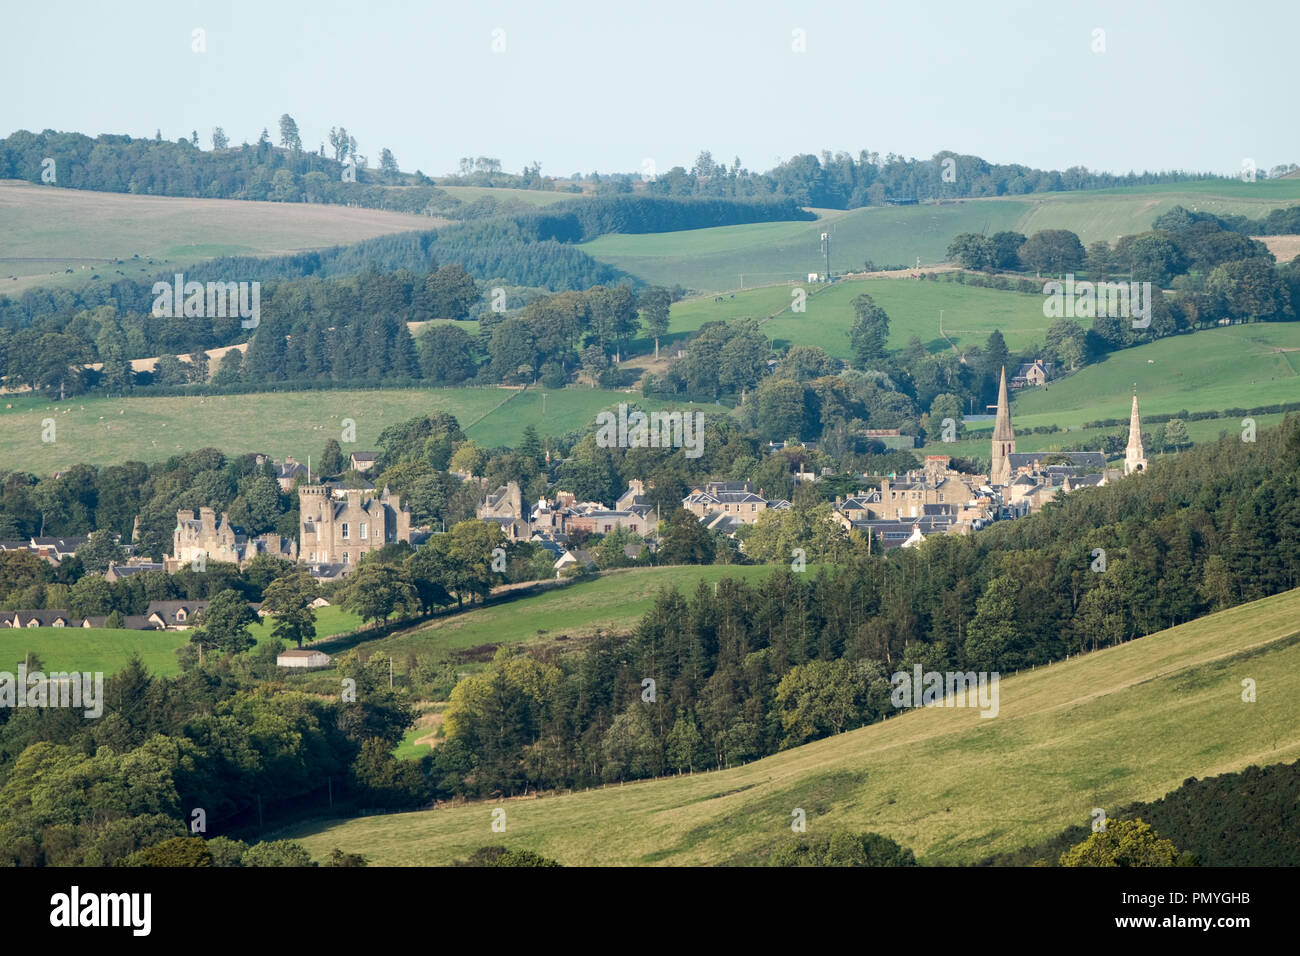 Steckdose Schottland Selkirk Scotland Stockfotos And Selkirk Scotland Bilder Alamy